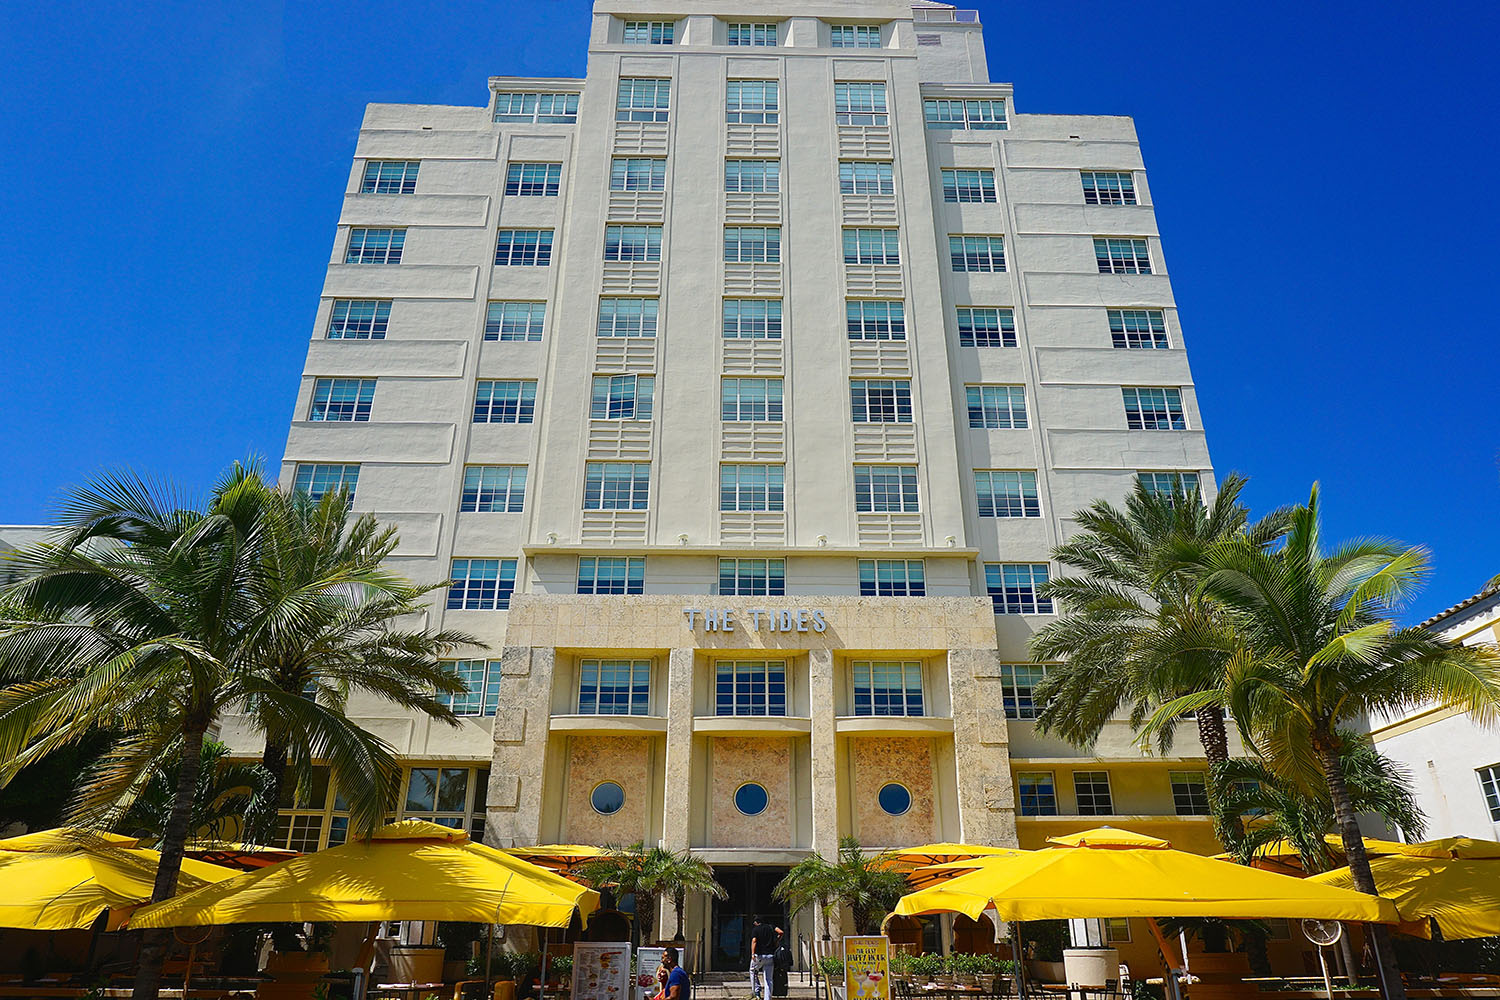 The Tides South Beach Review